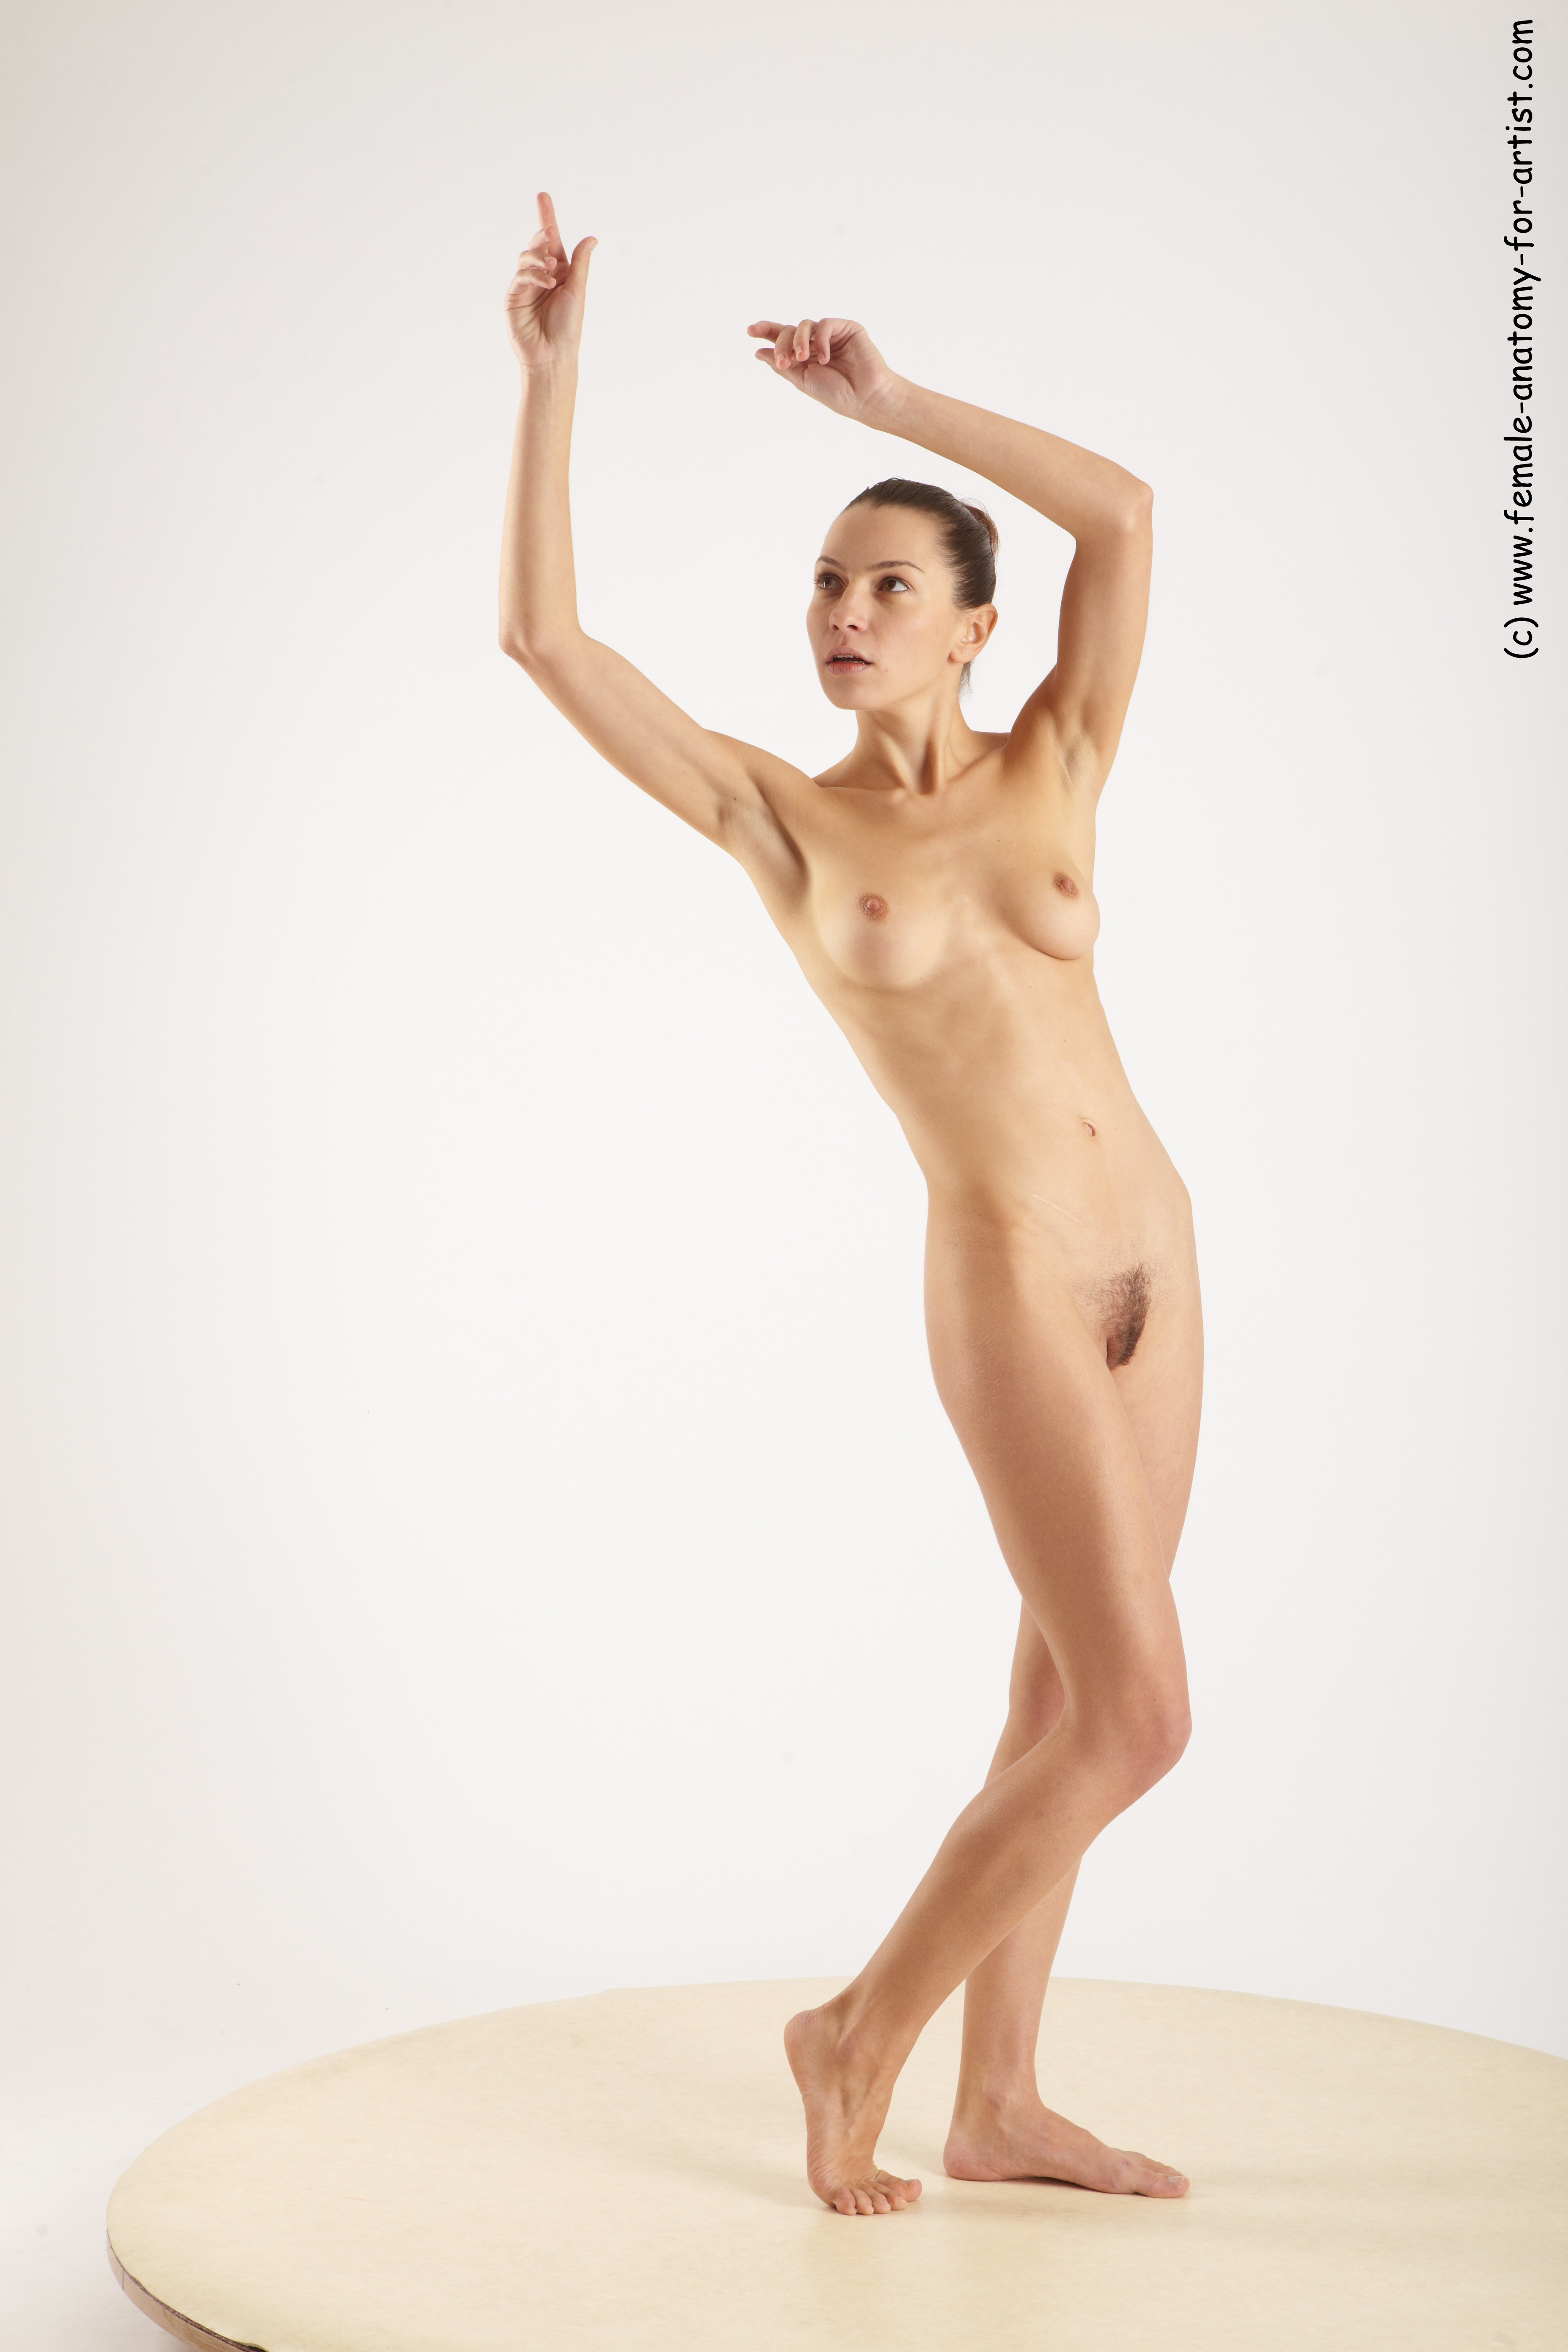 nude-woman-standing-pose-nsfw